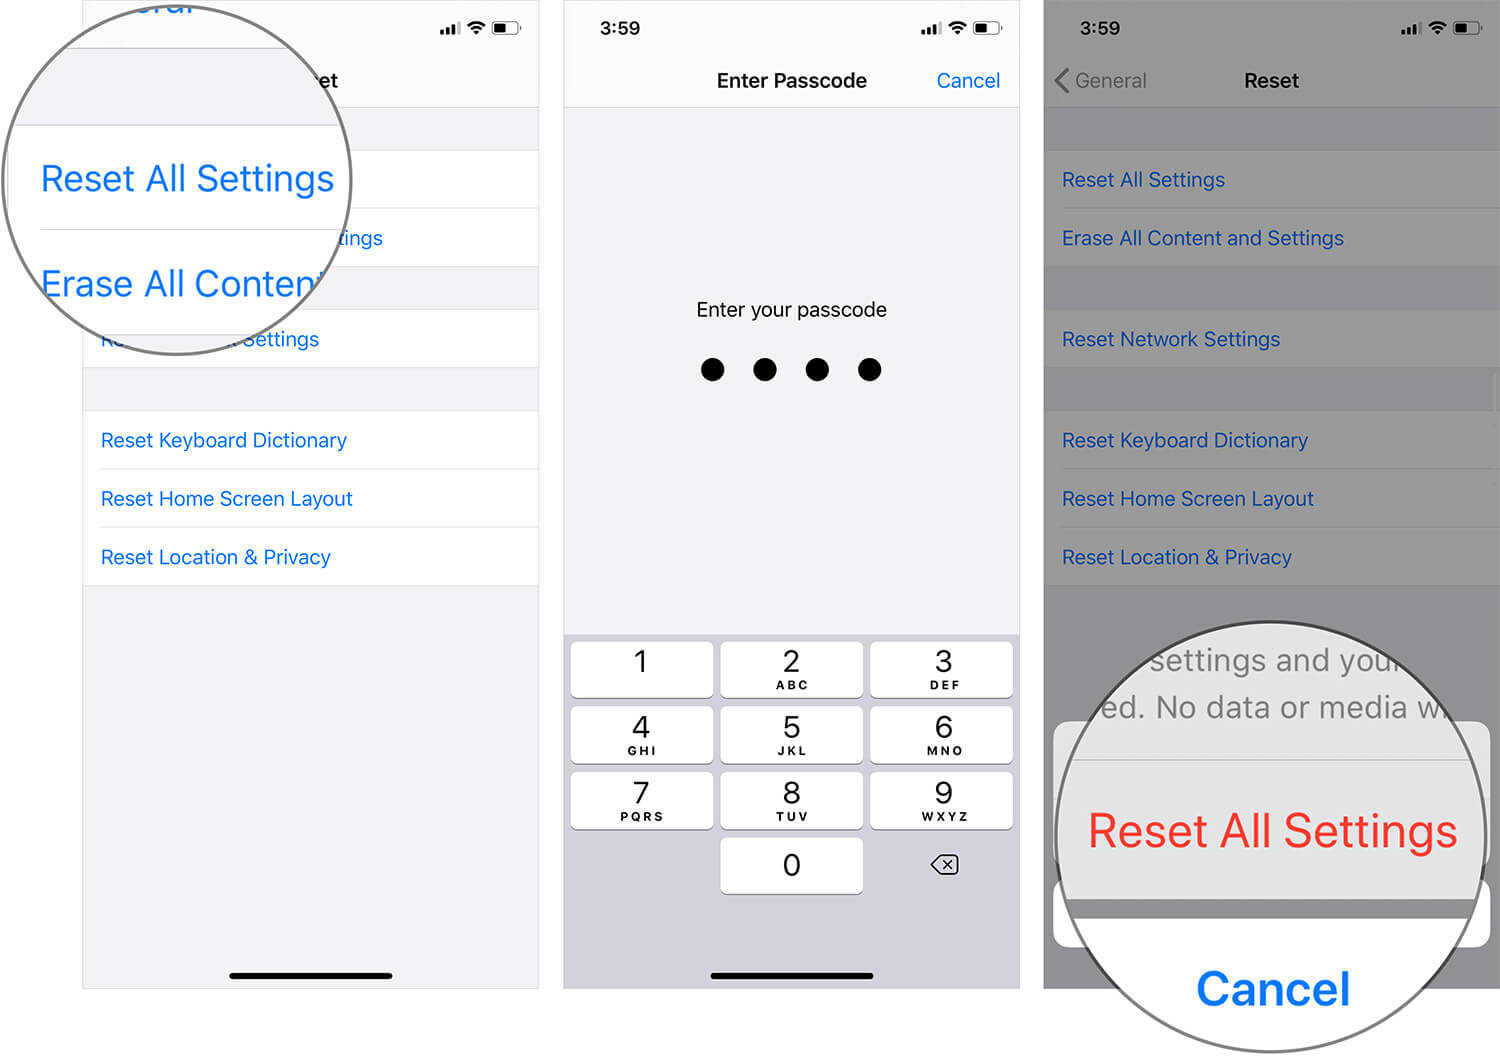 Reset All Settings on iPhone or iPad